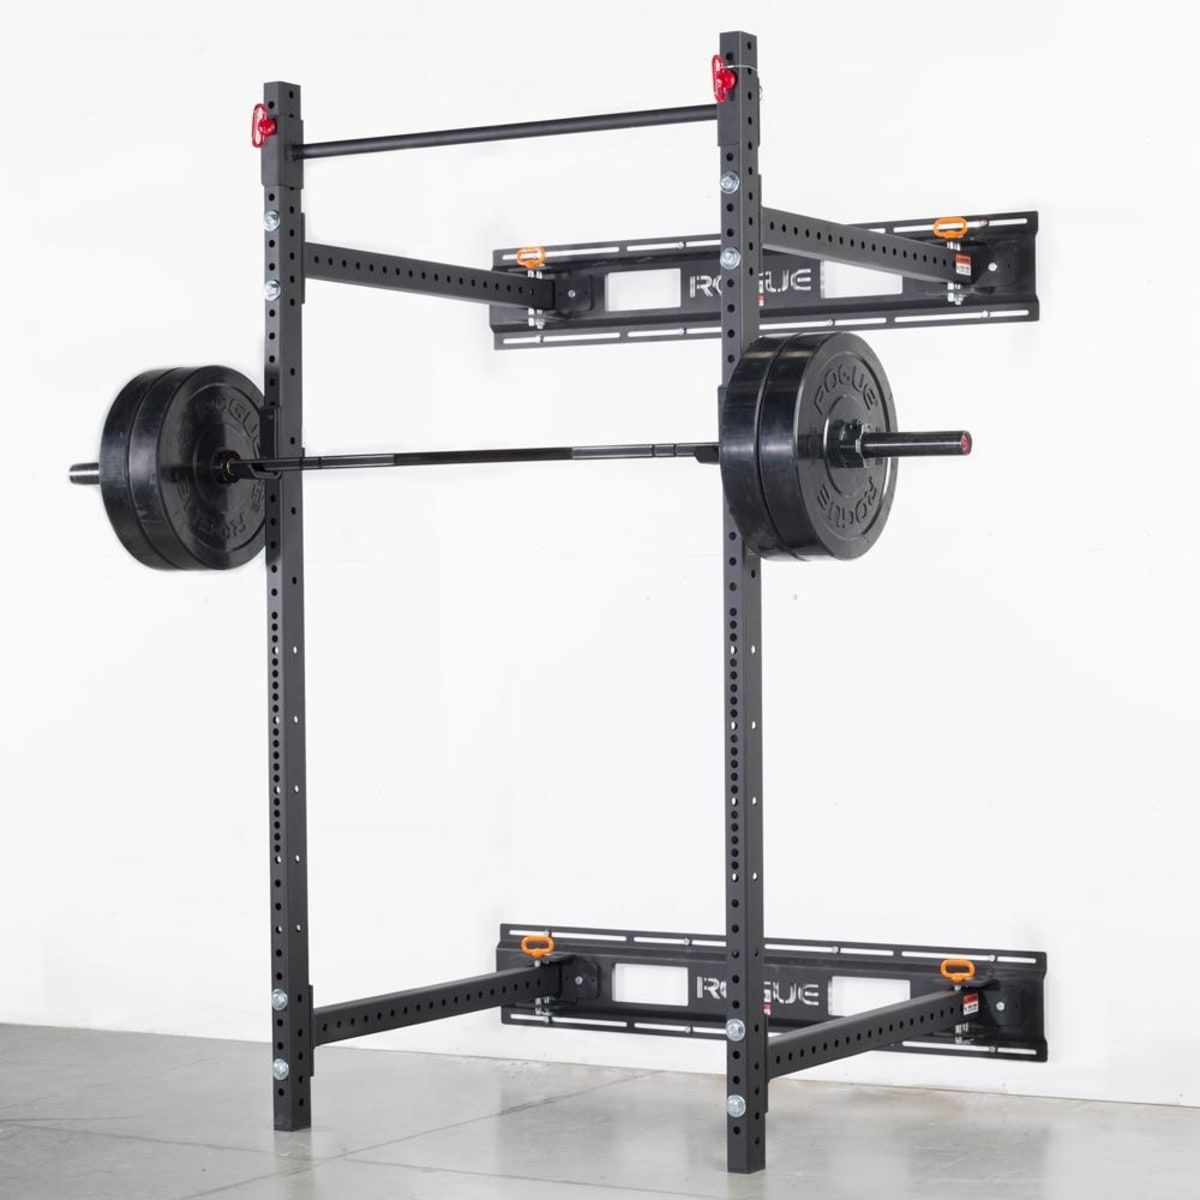 10 Best Gifts For People Who Work Out Wall mount rack